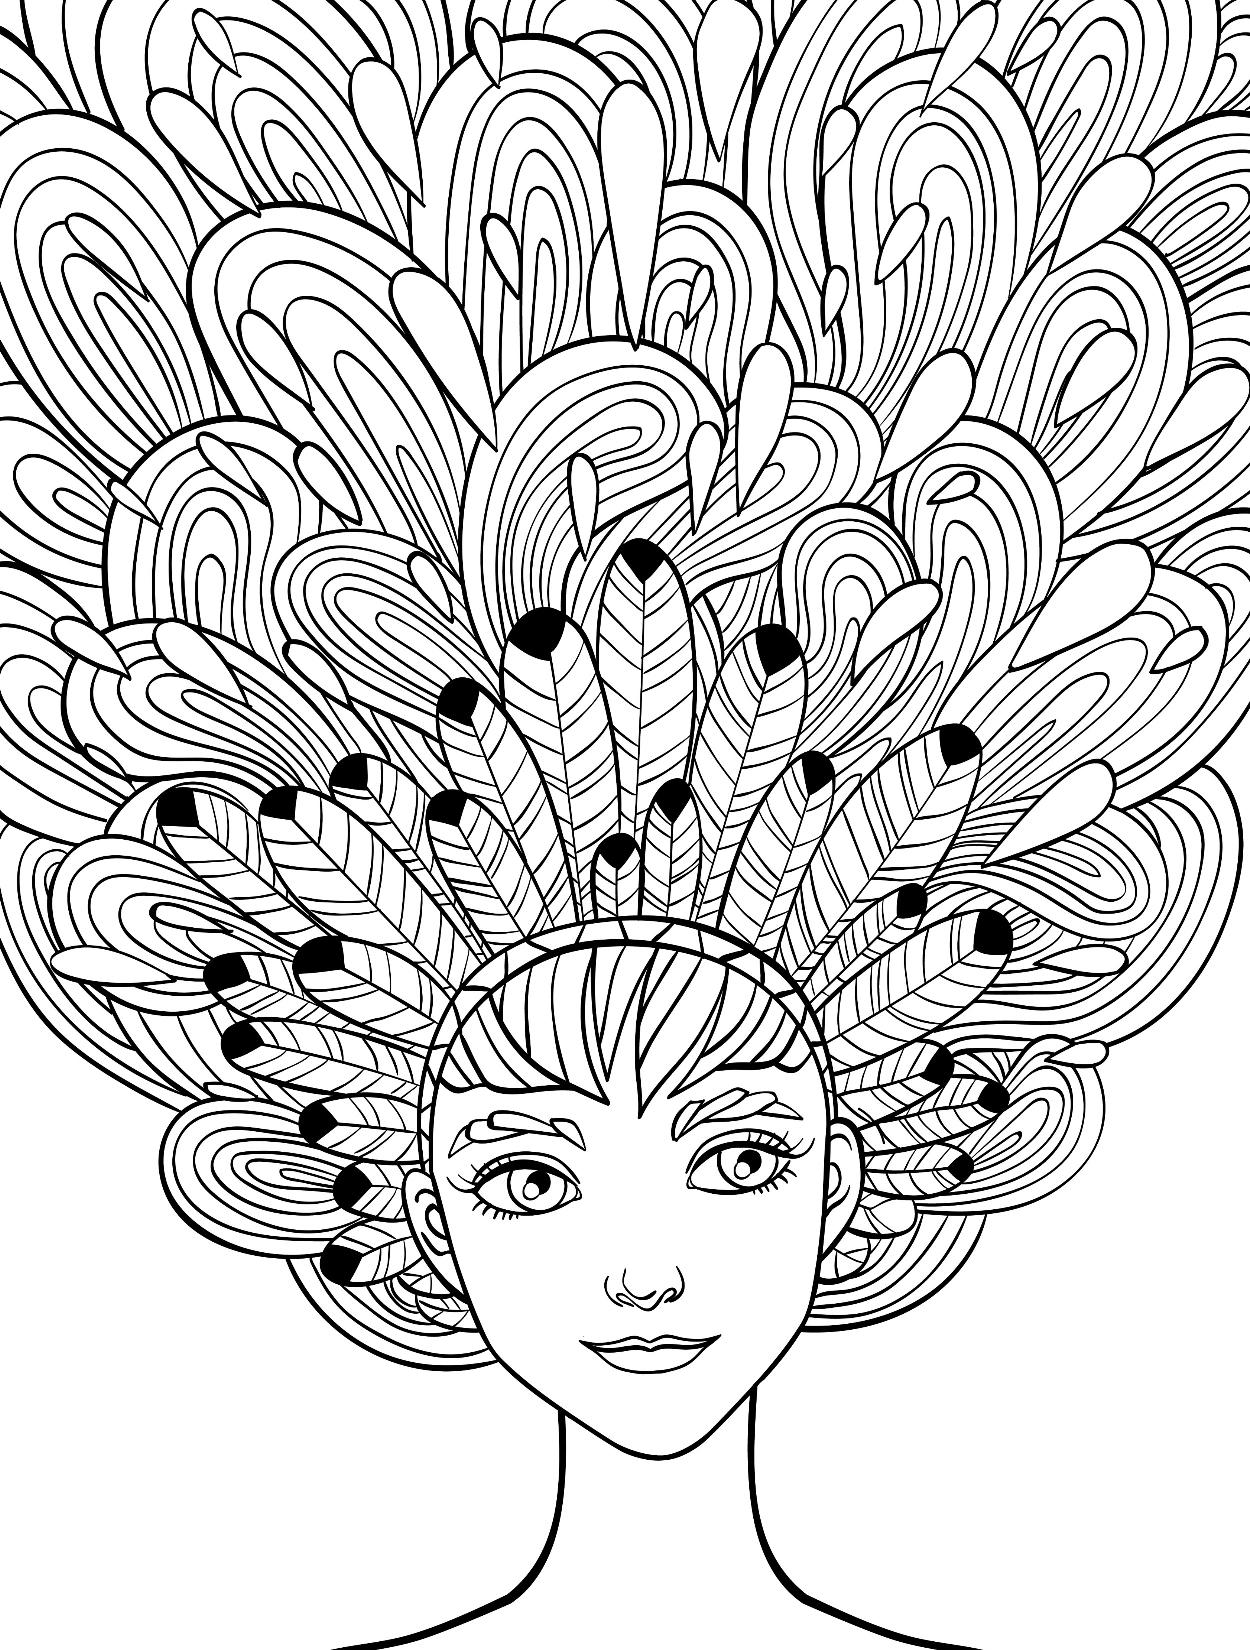 Girl with feathers in her hair